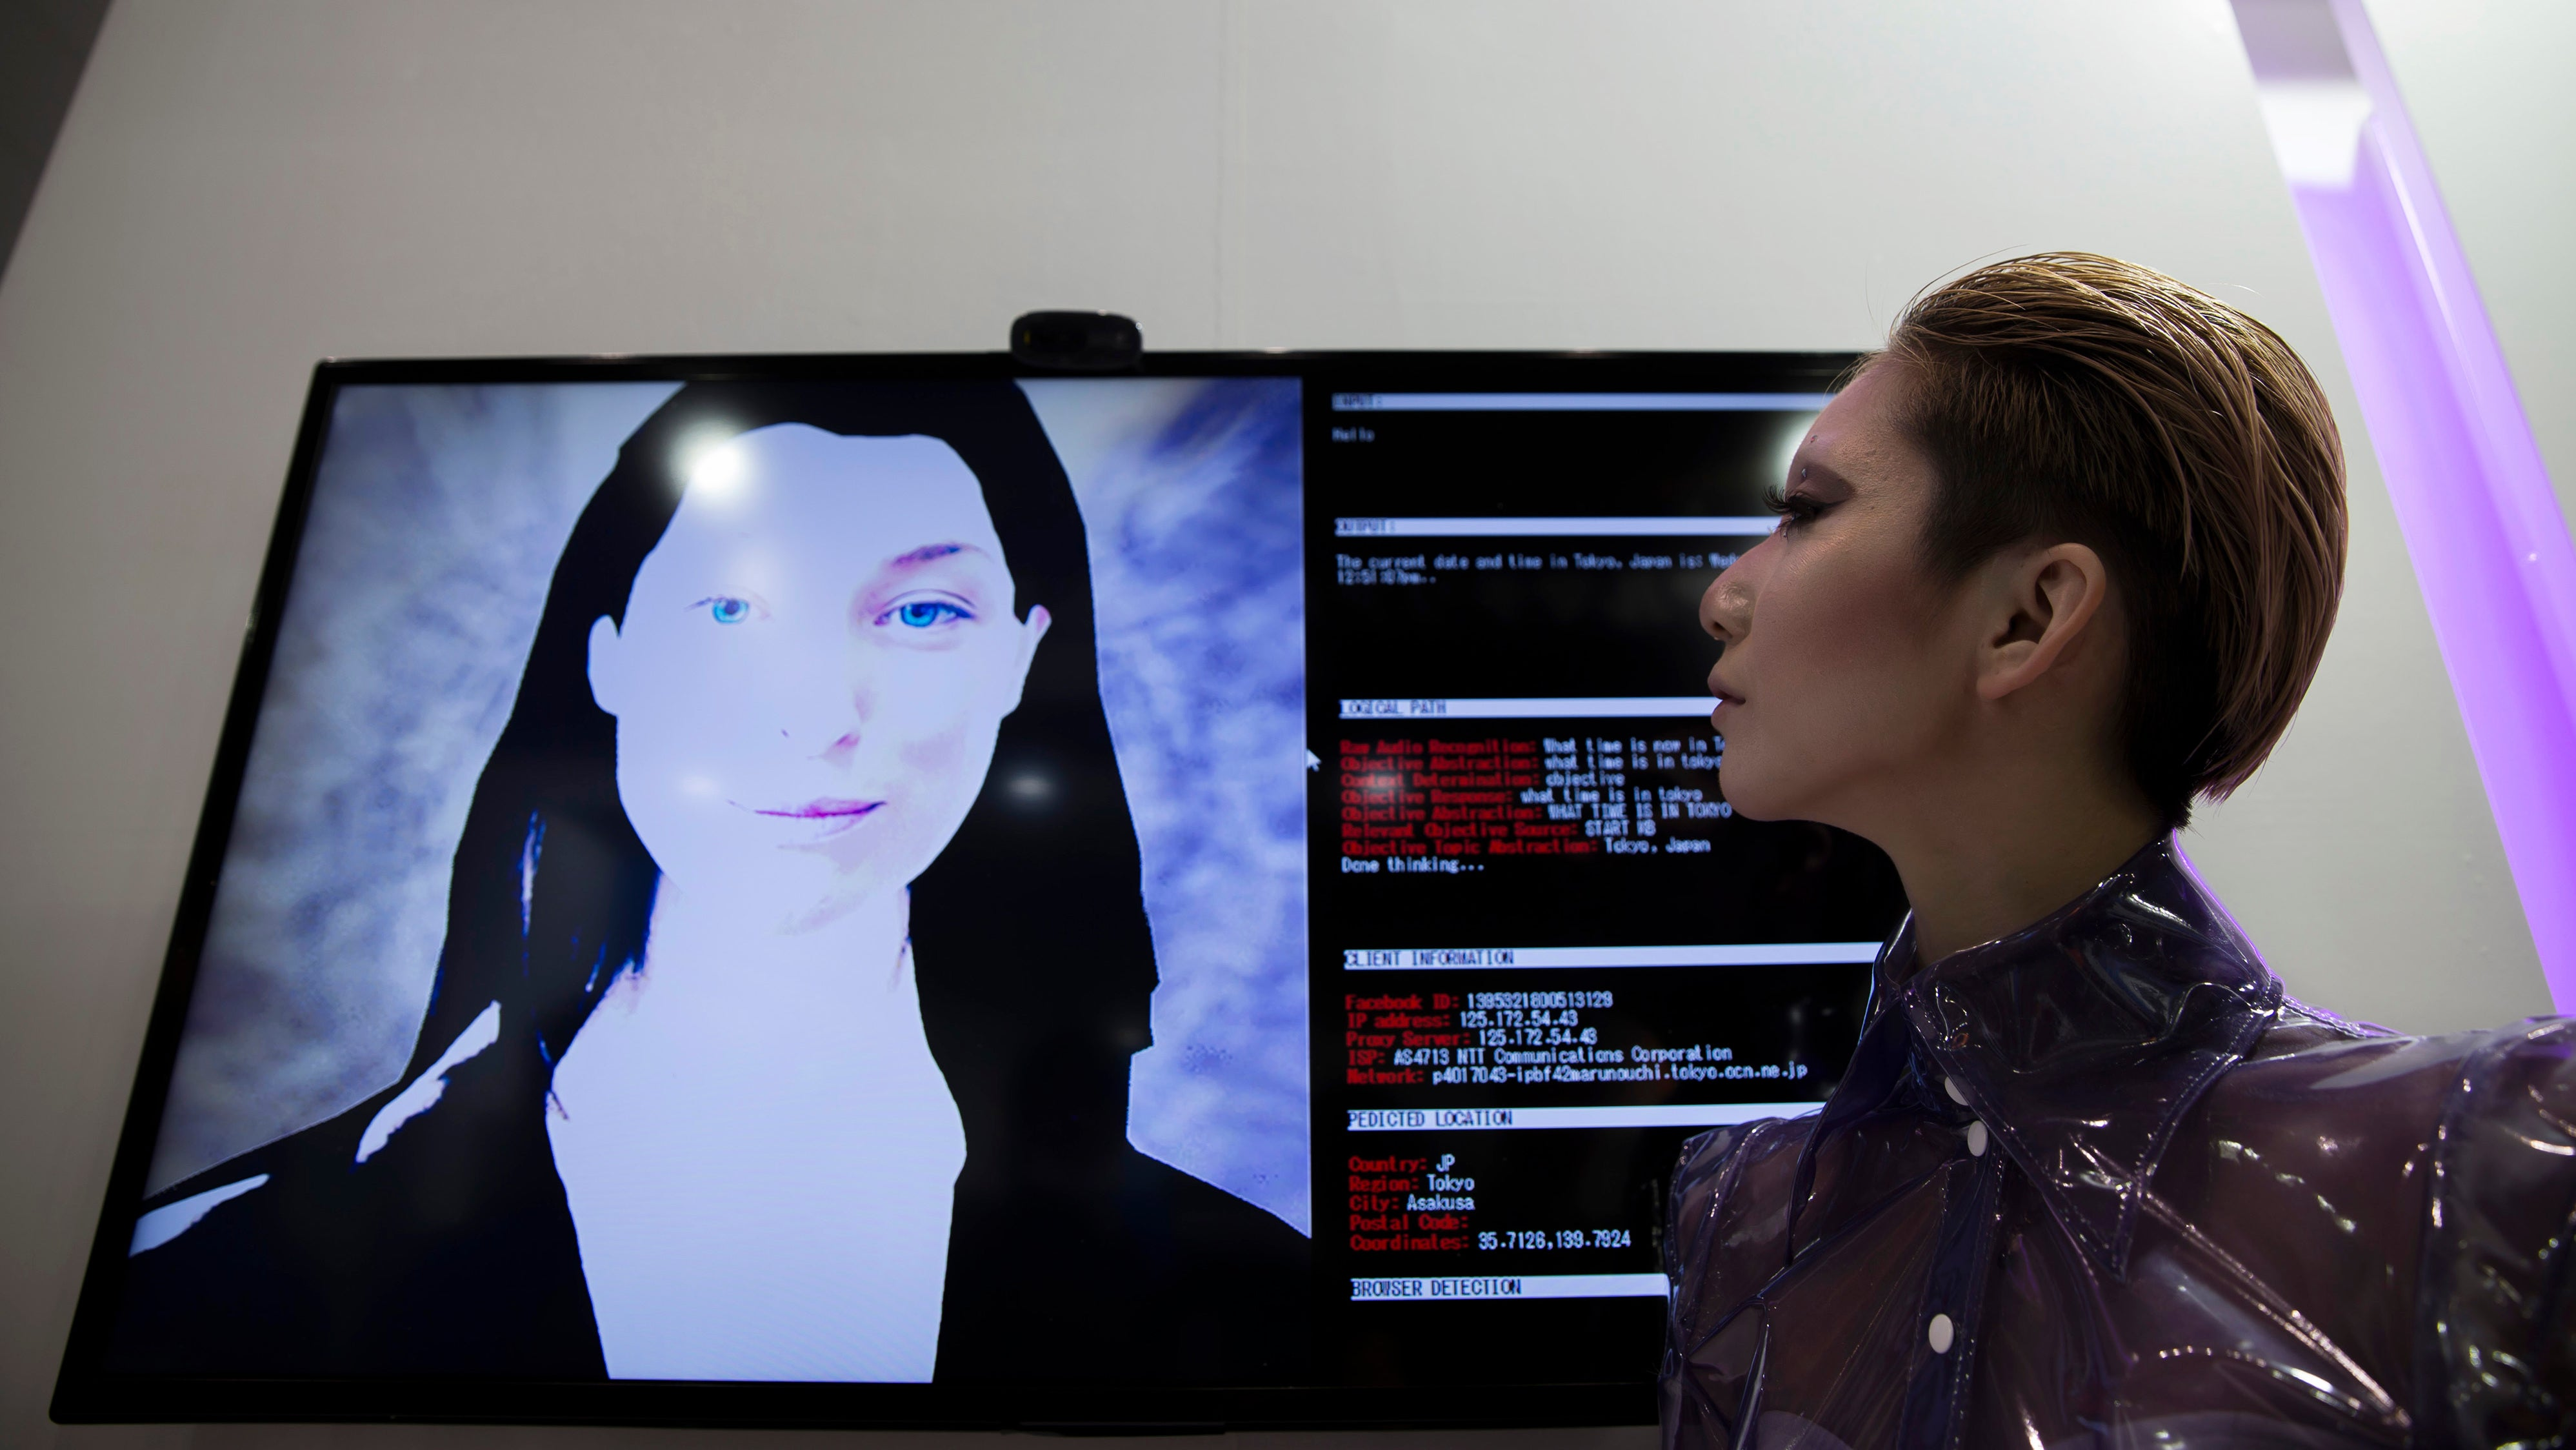 Top 5 Most Worrying Trends In Artificial Intelligence